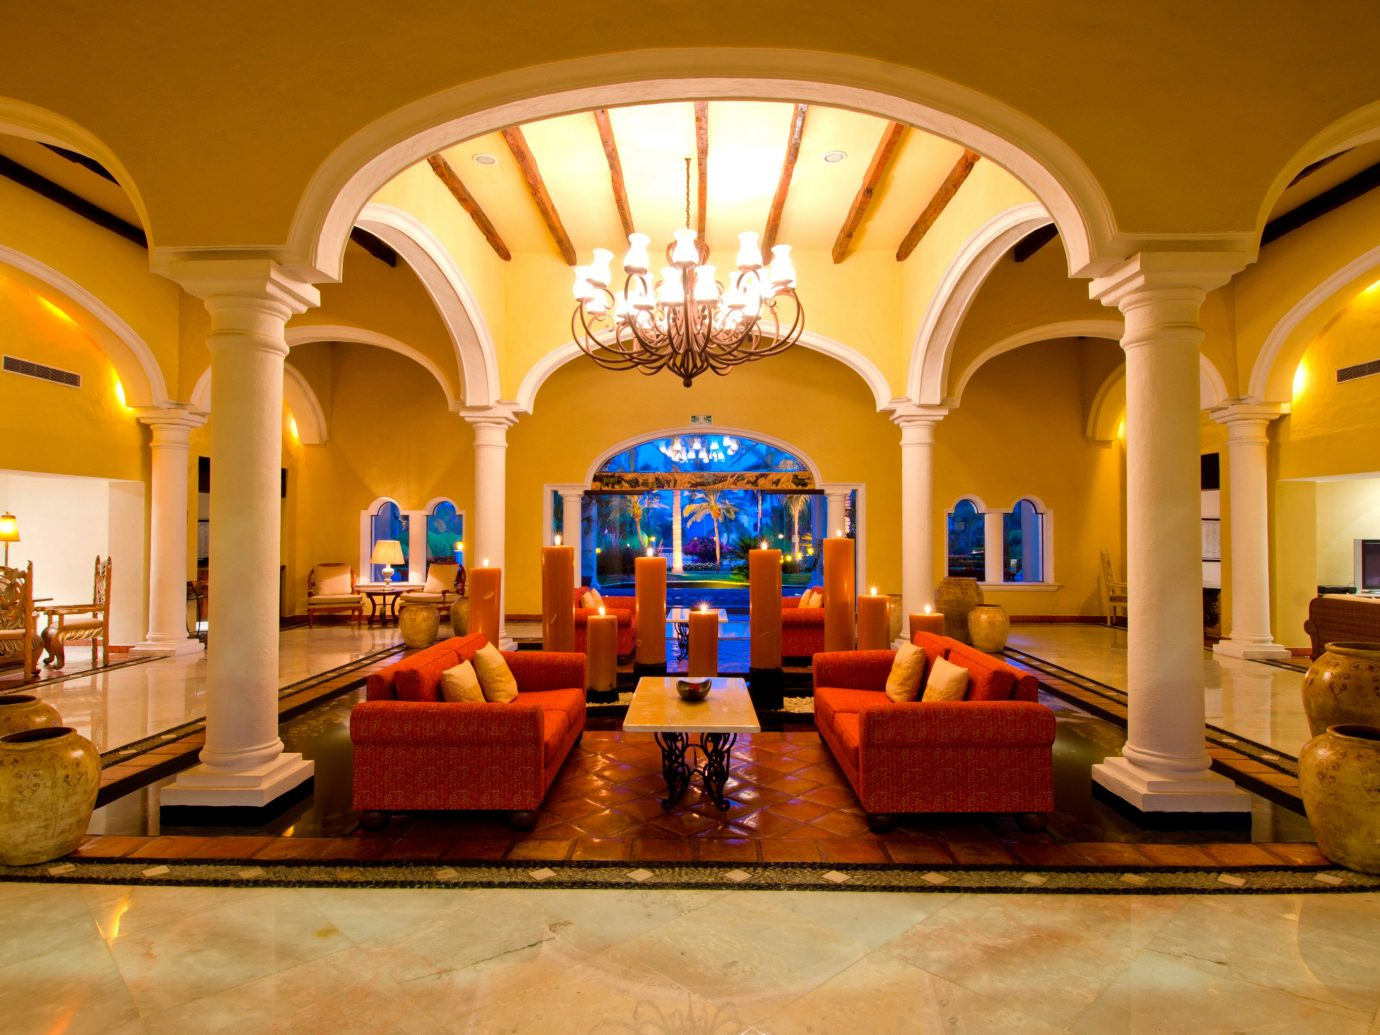 All-Inclusive Resorts Elegant Hip Hotels Living Lounge Luxury Modern Tropical indoor yellow building Lobby estate palace interior design function hall ballroom